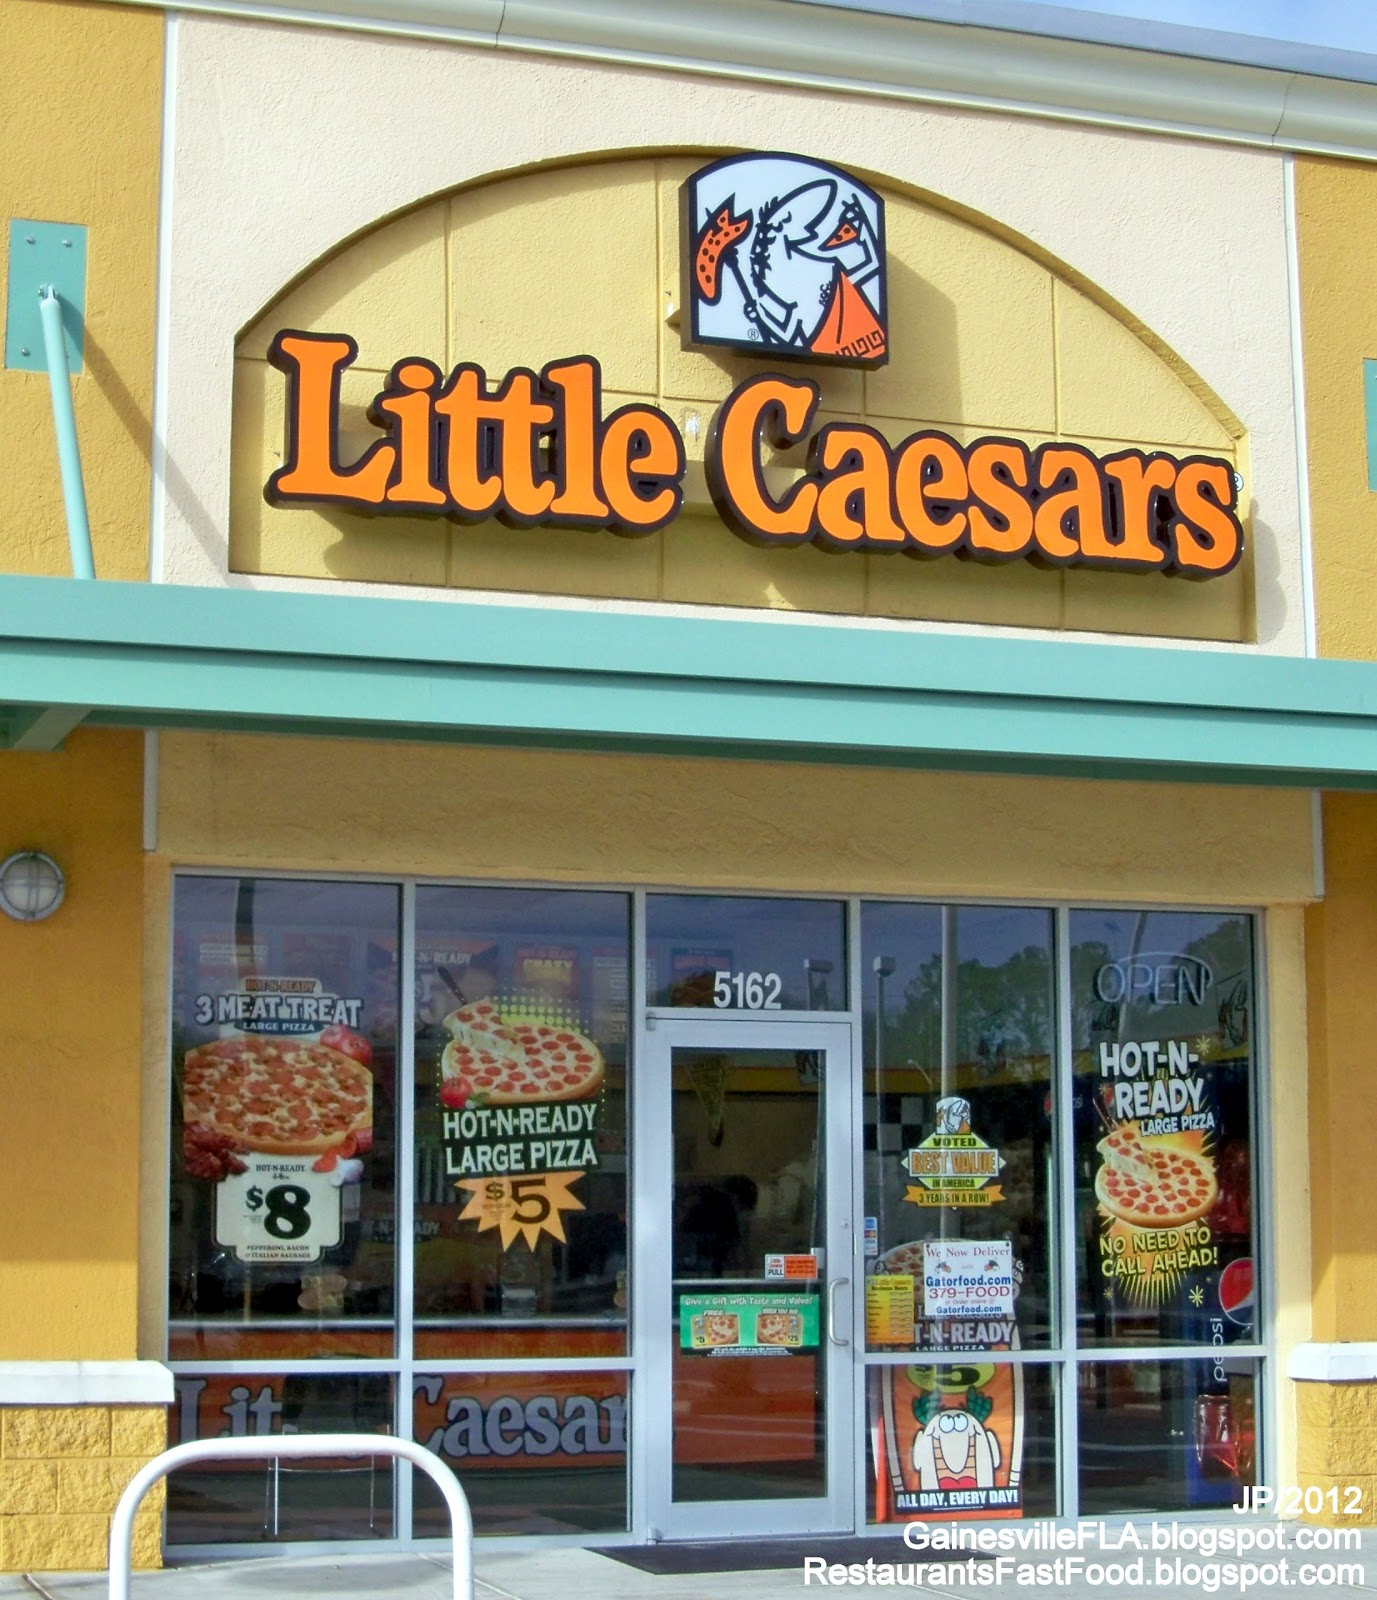 Founded in , Little Caesars Pizza is a family-owned and operated chain of restaurants that supplies pizzas to clients throughout the United States. The chain s restaurants serve vegetarian, deep-dish and supreme pizzas. Its restaurants offer a variety of pizza toppings, such as onions, mushrooms, green olives and banana pepper rings.5/10(47).